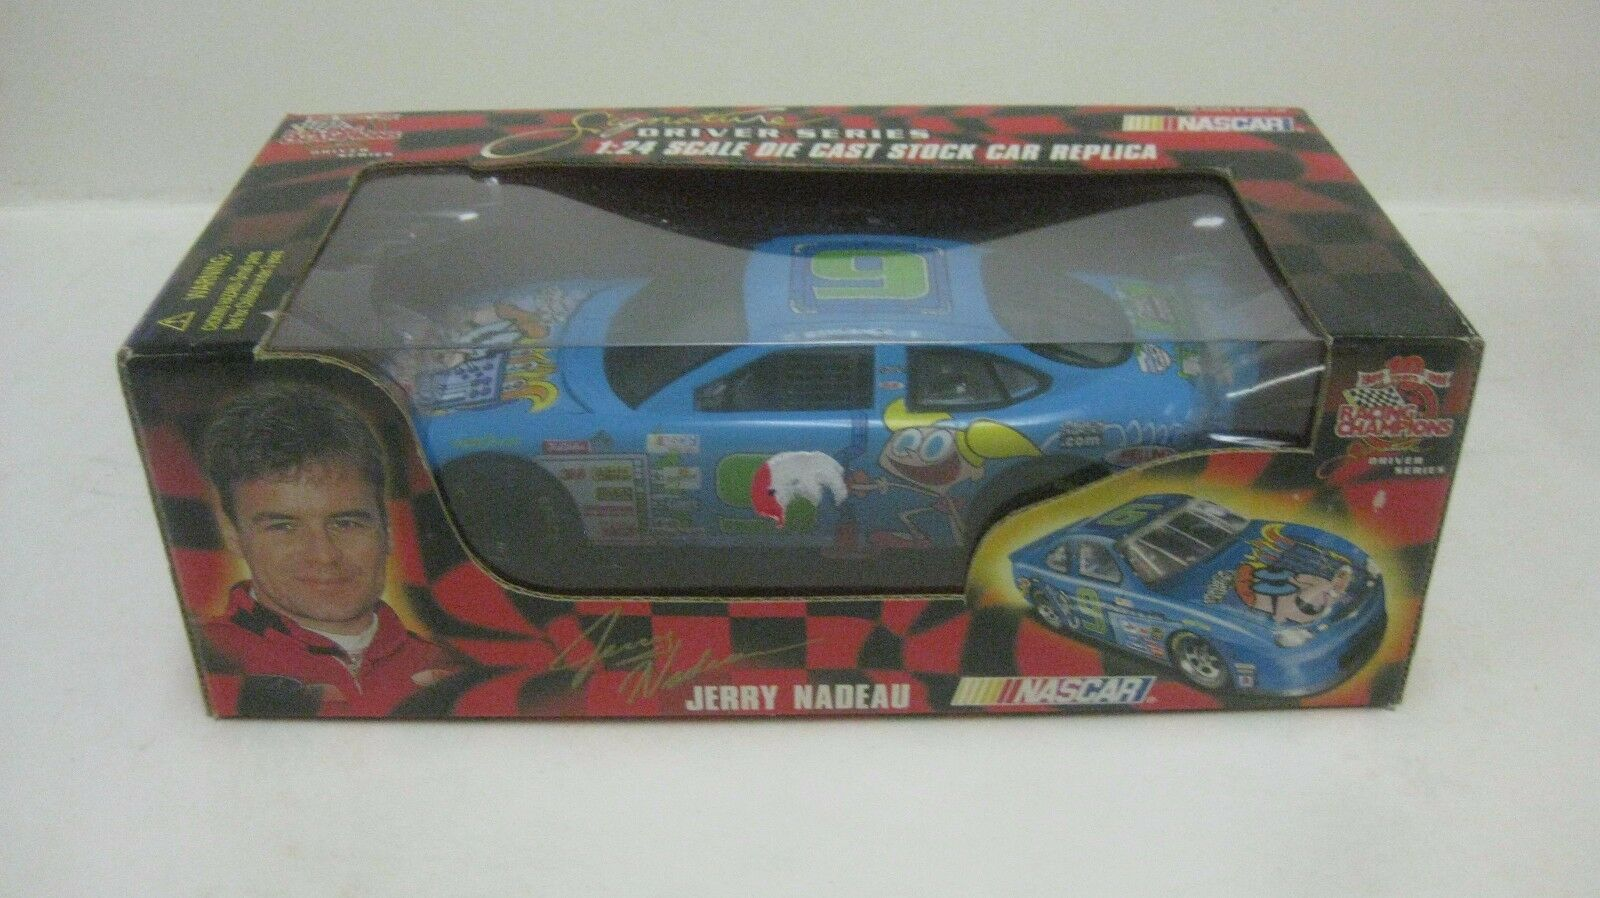 Nascar Jerry Nadeau Cartoon Network Stier 1 24 Skala-Modelle 1999 Neu dc1722